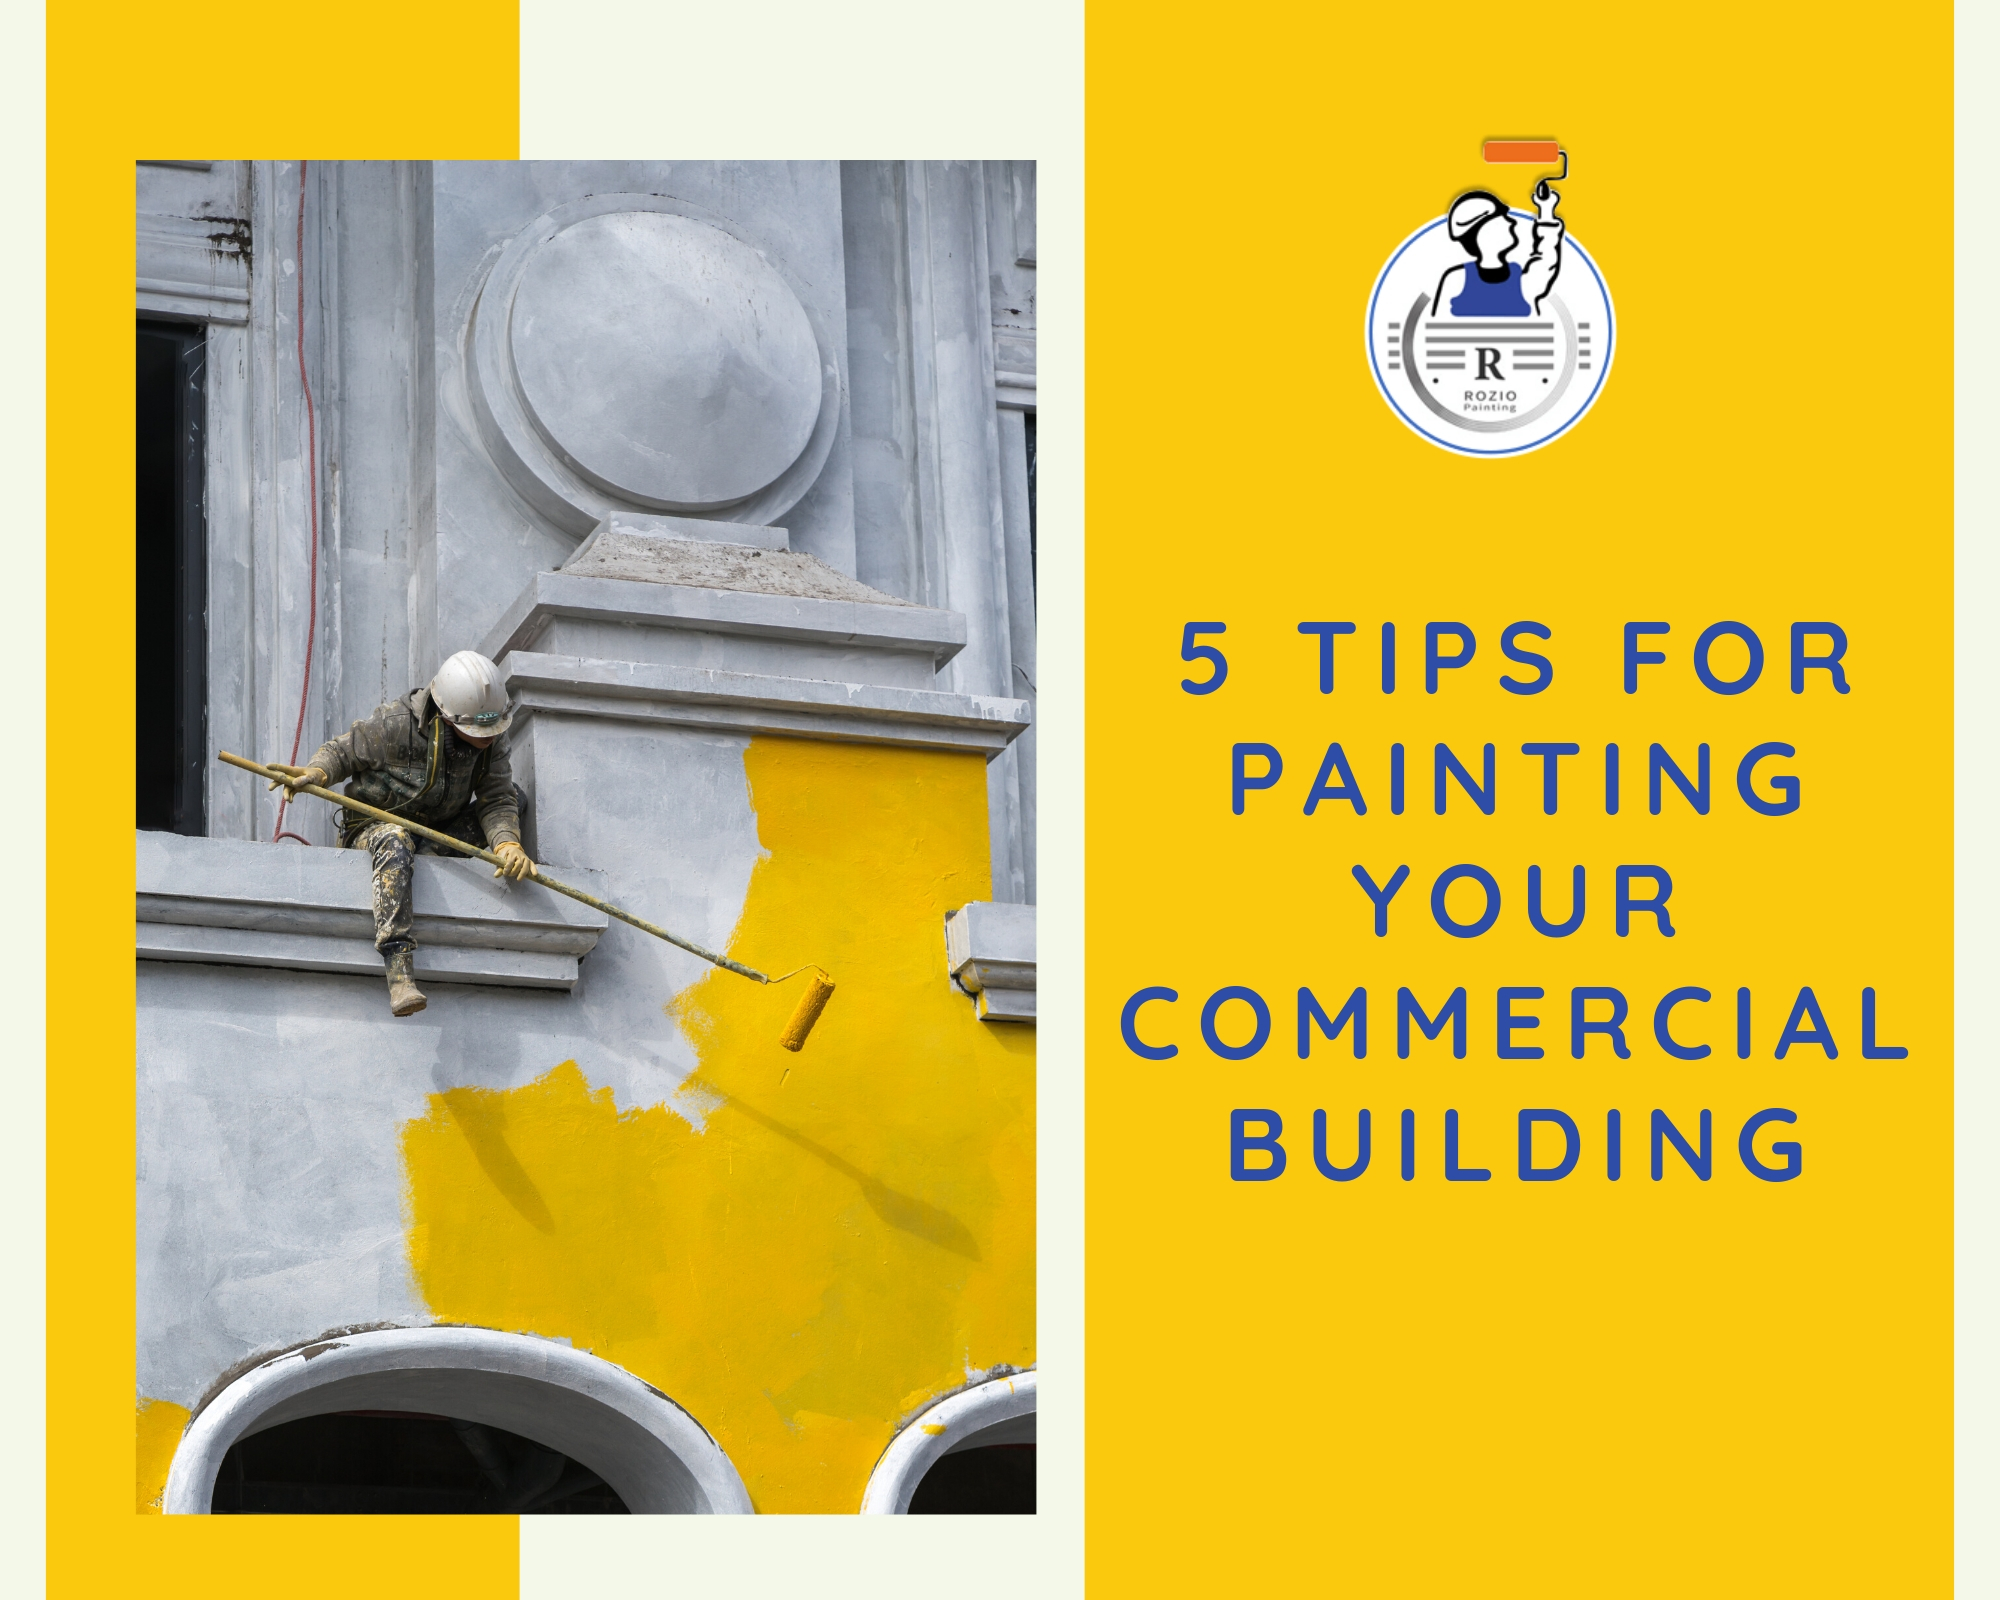 5 TIPS FOR PAINTING YOUR COMMERCIAL BUILDING